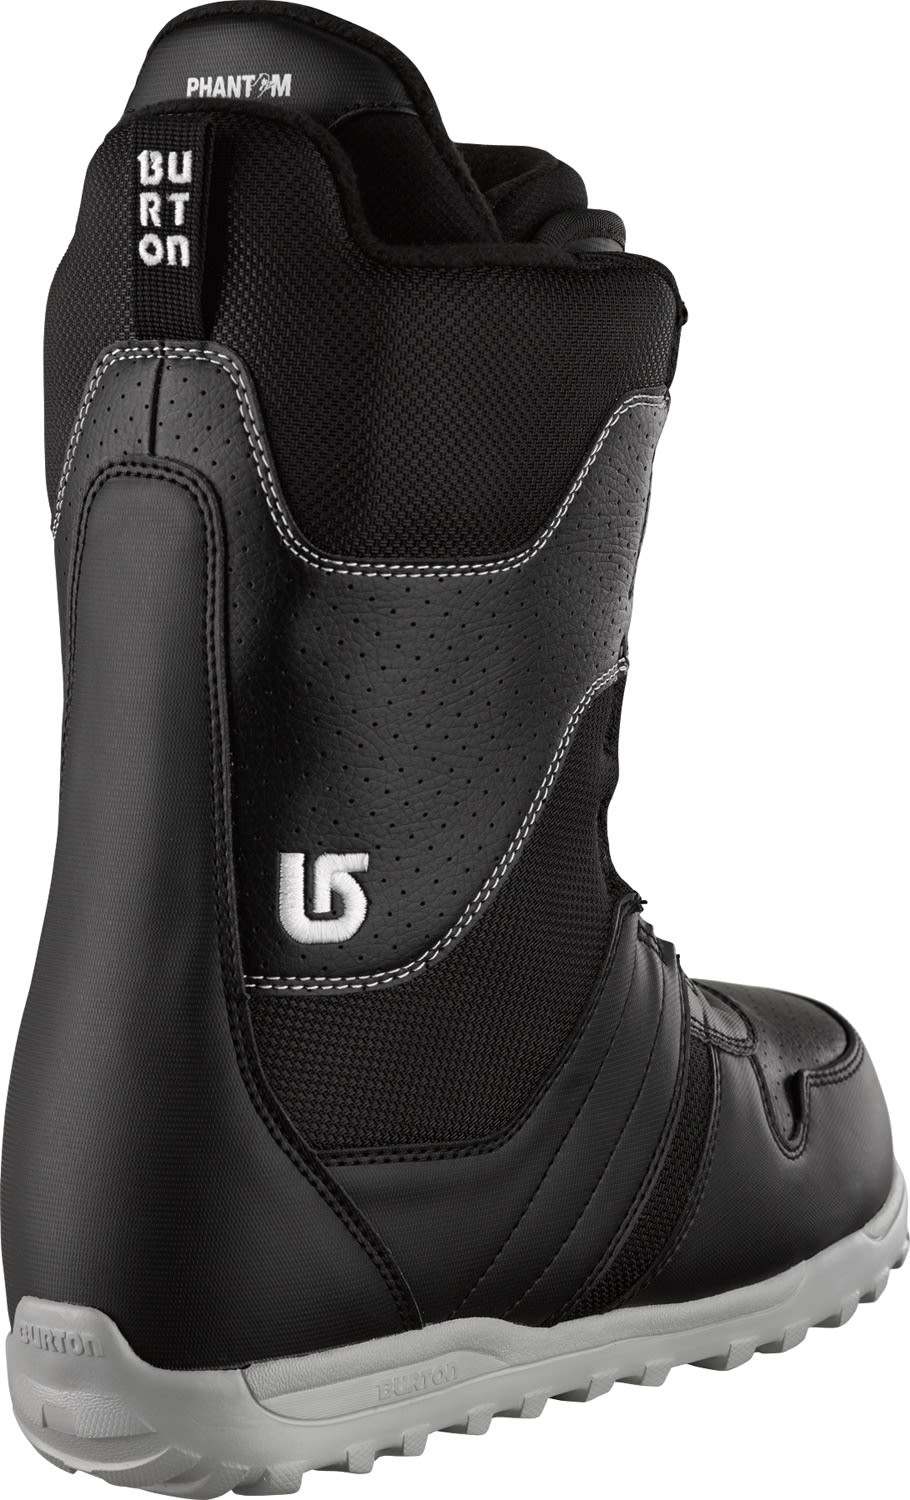 On Sale Burton Jet Snowboard Boots Up To 55 Off